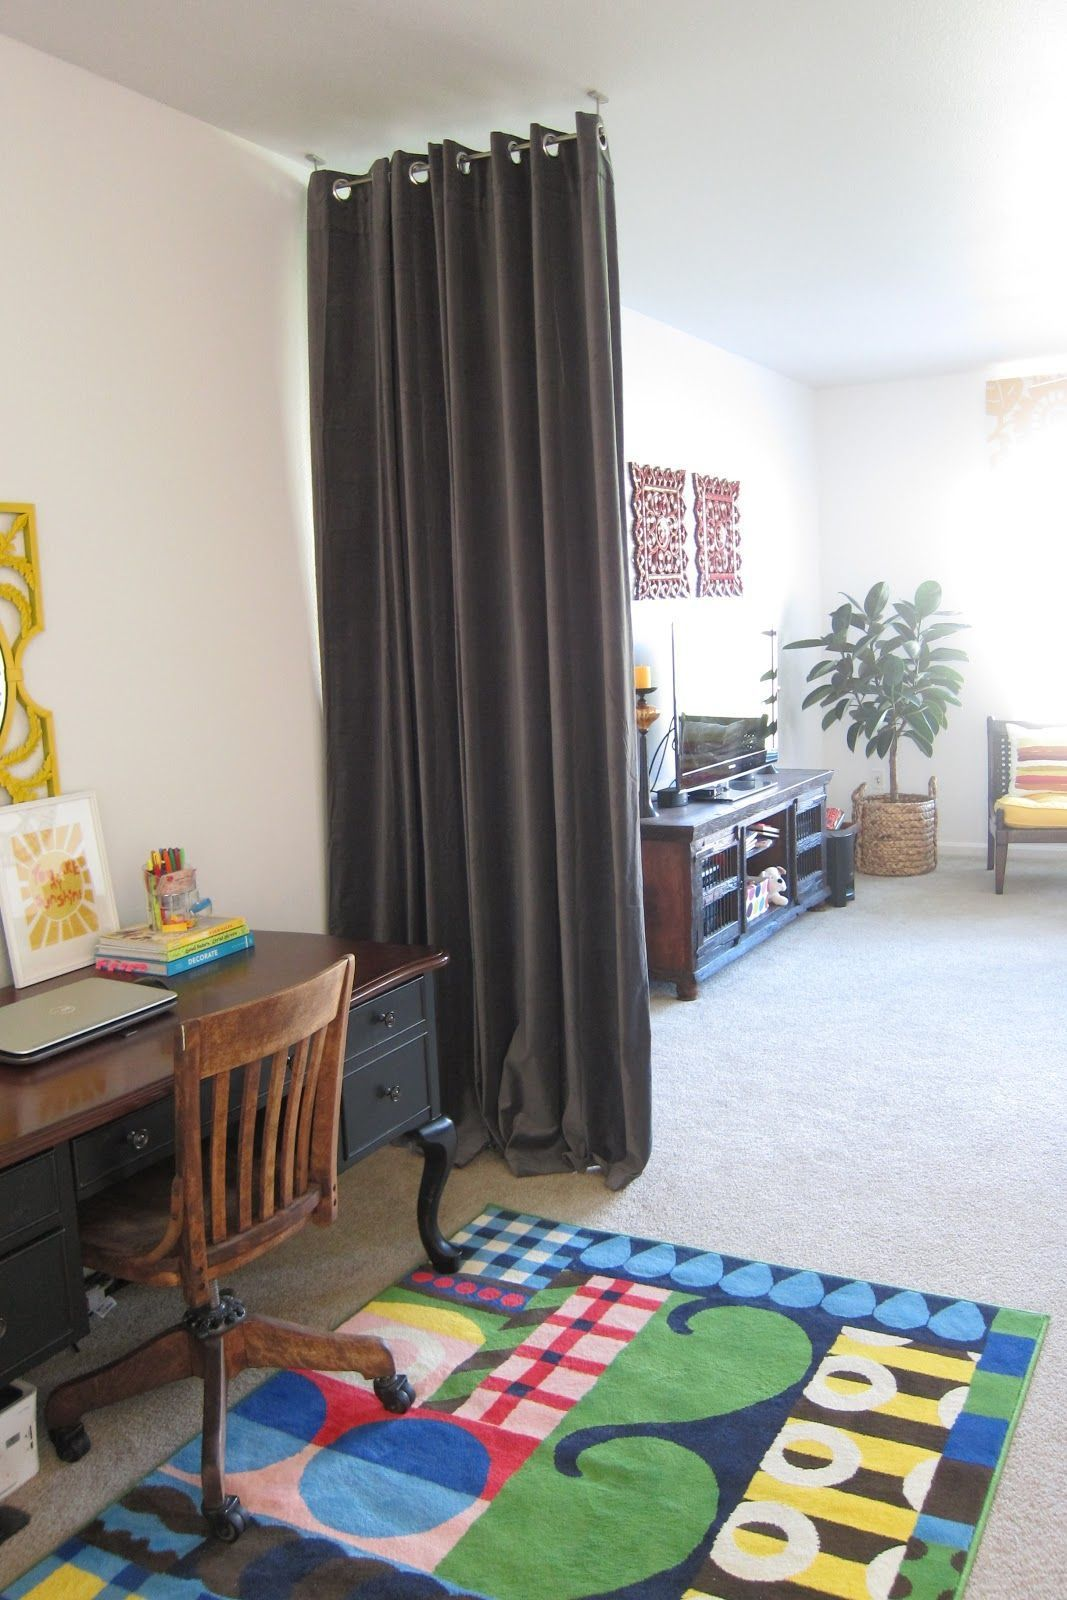 Room divider idea ikea grey curtain with longer pole could use to